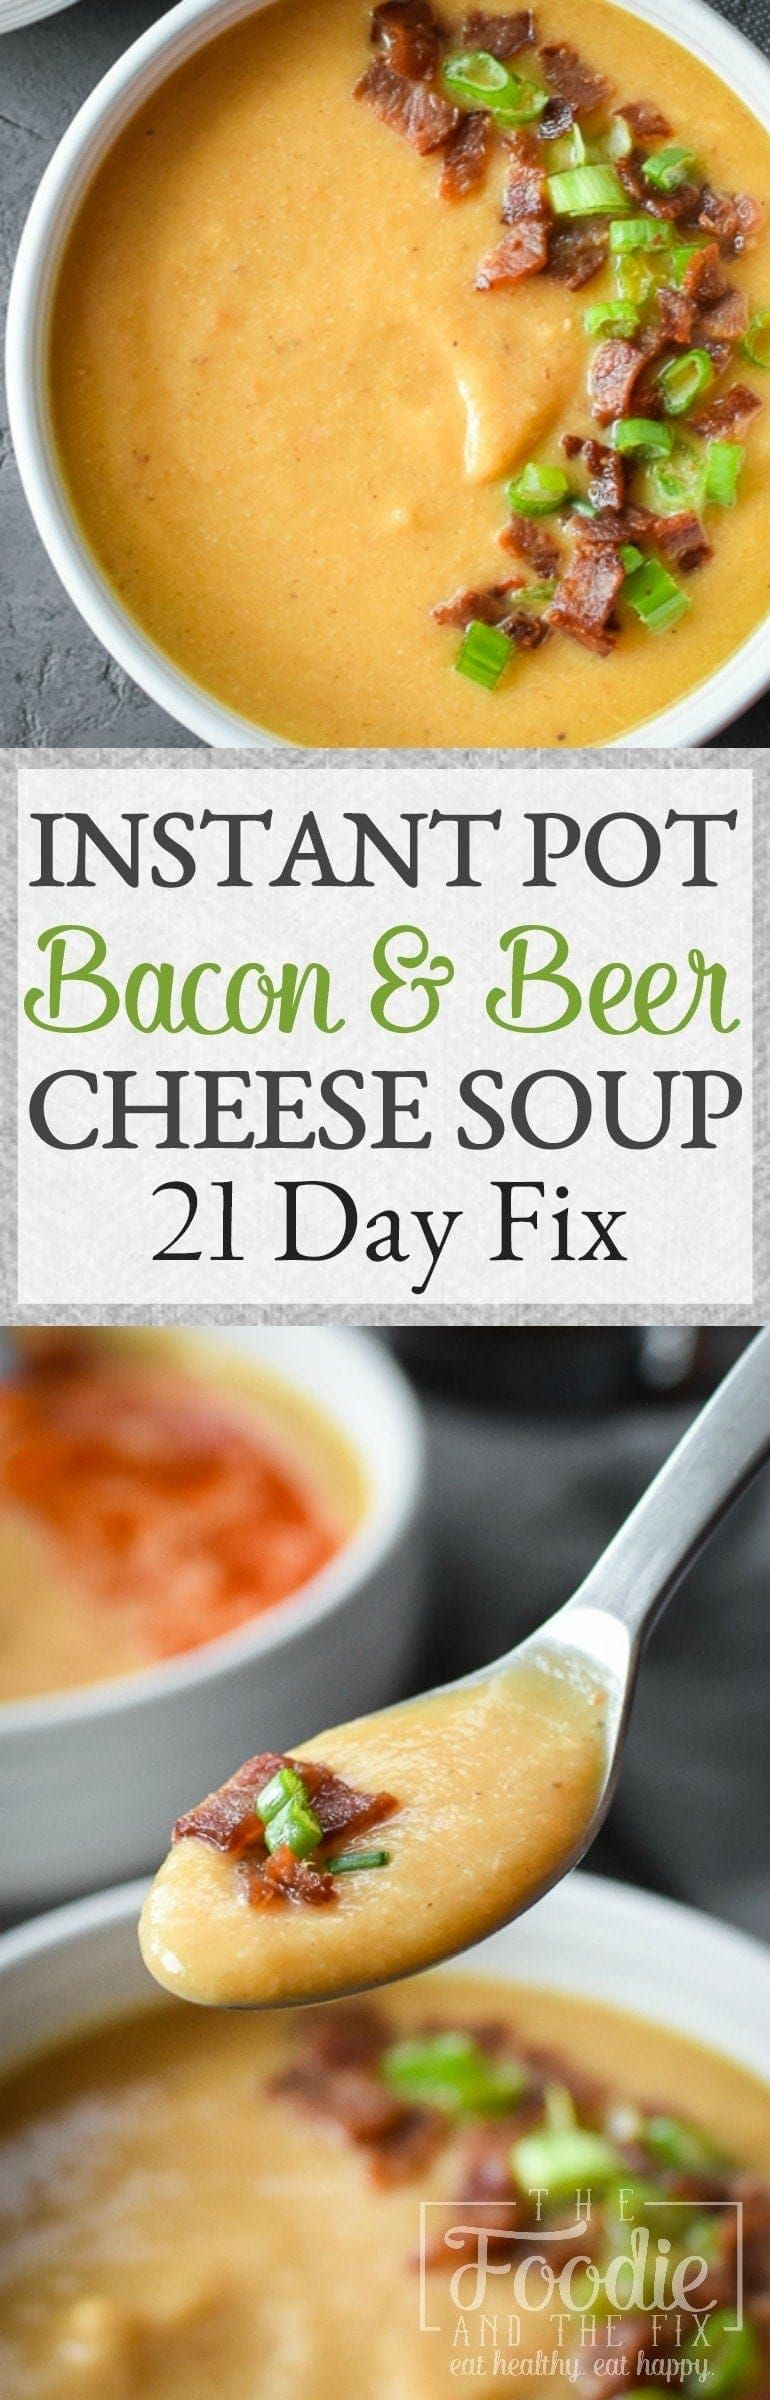 Instant Pot Bacon and Beer Cheese Cauliflower Soup {21 Day Fix} | The Foodie and The Fix – Çorba Tarifleri